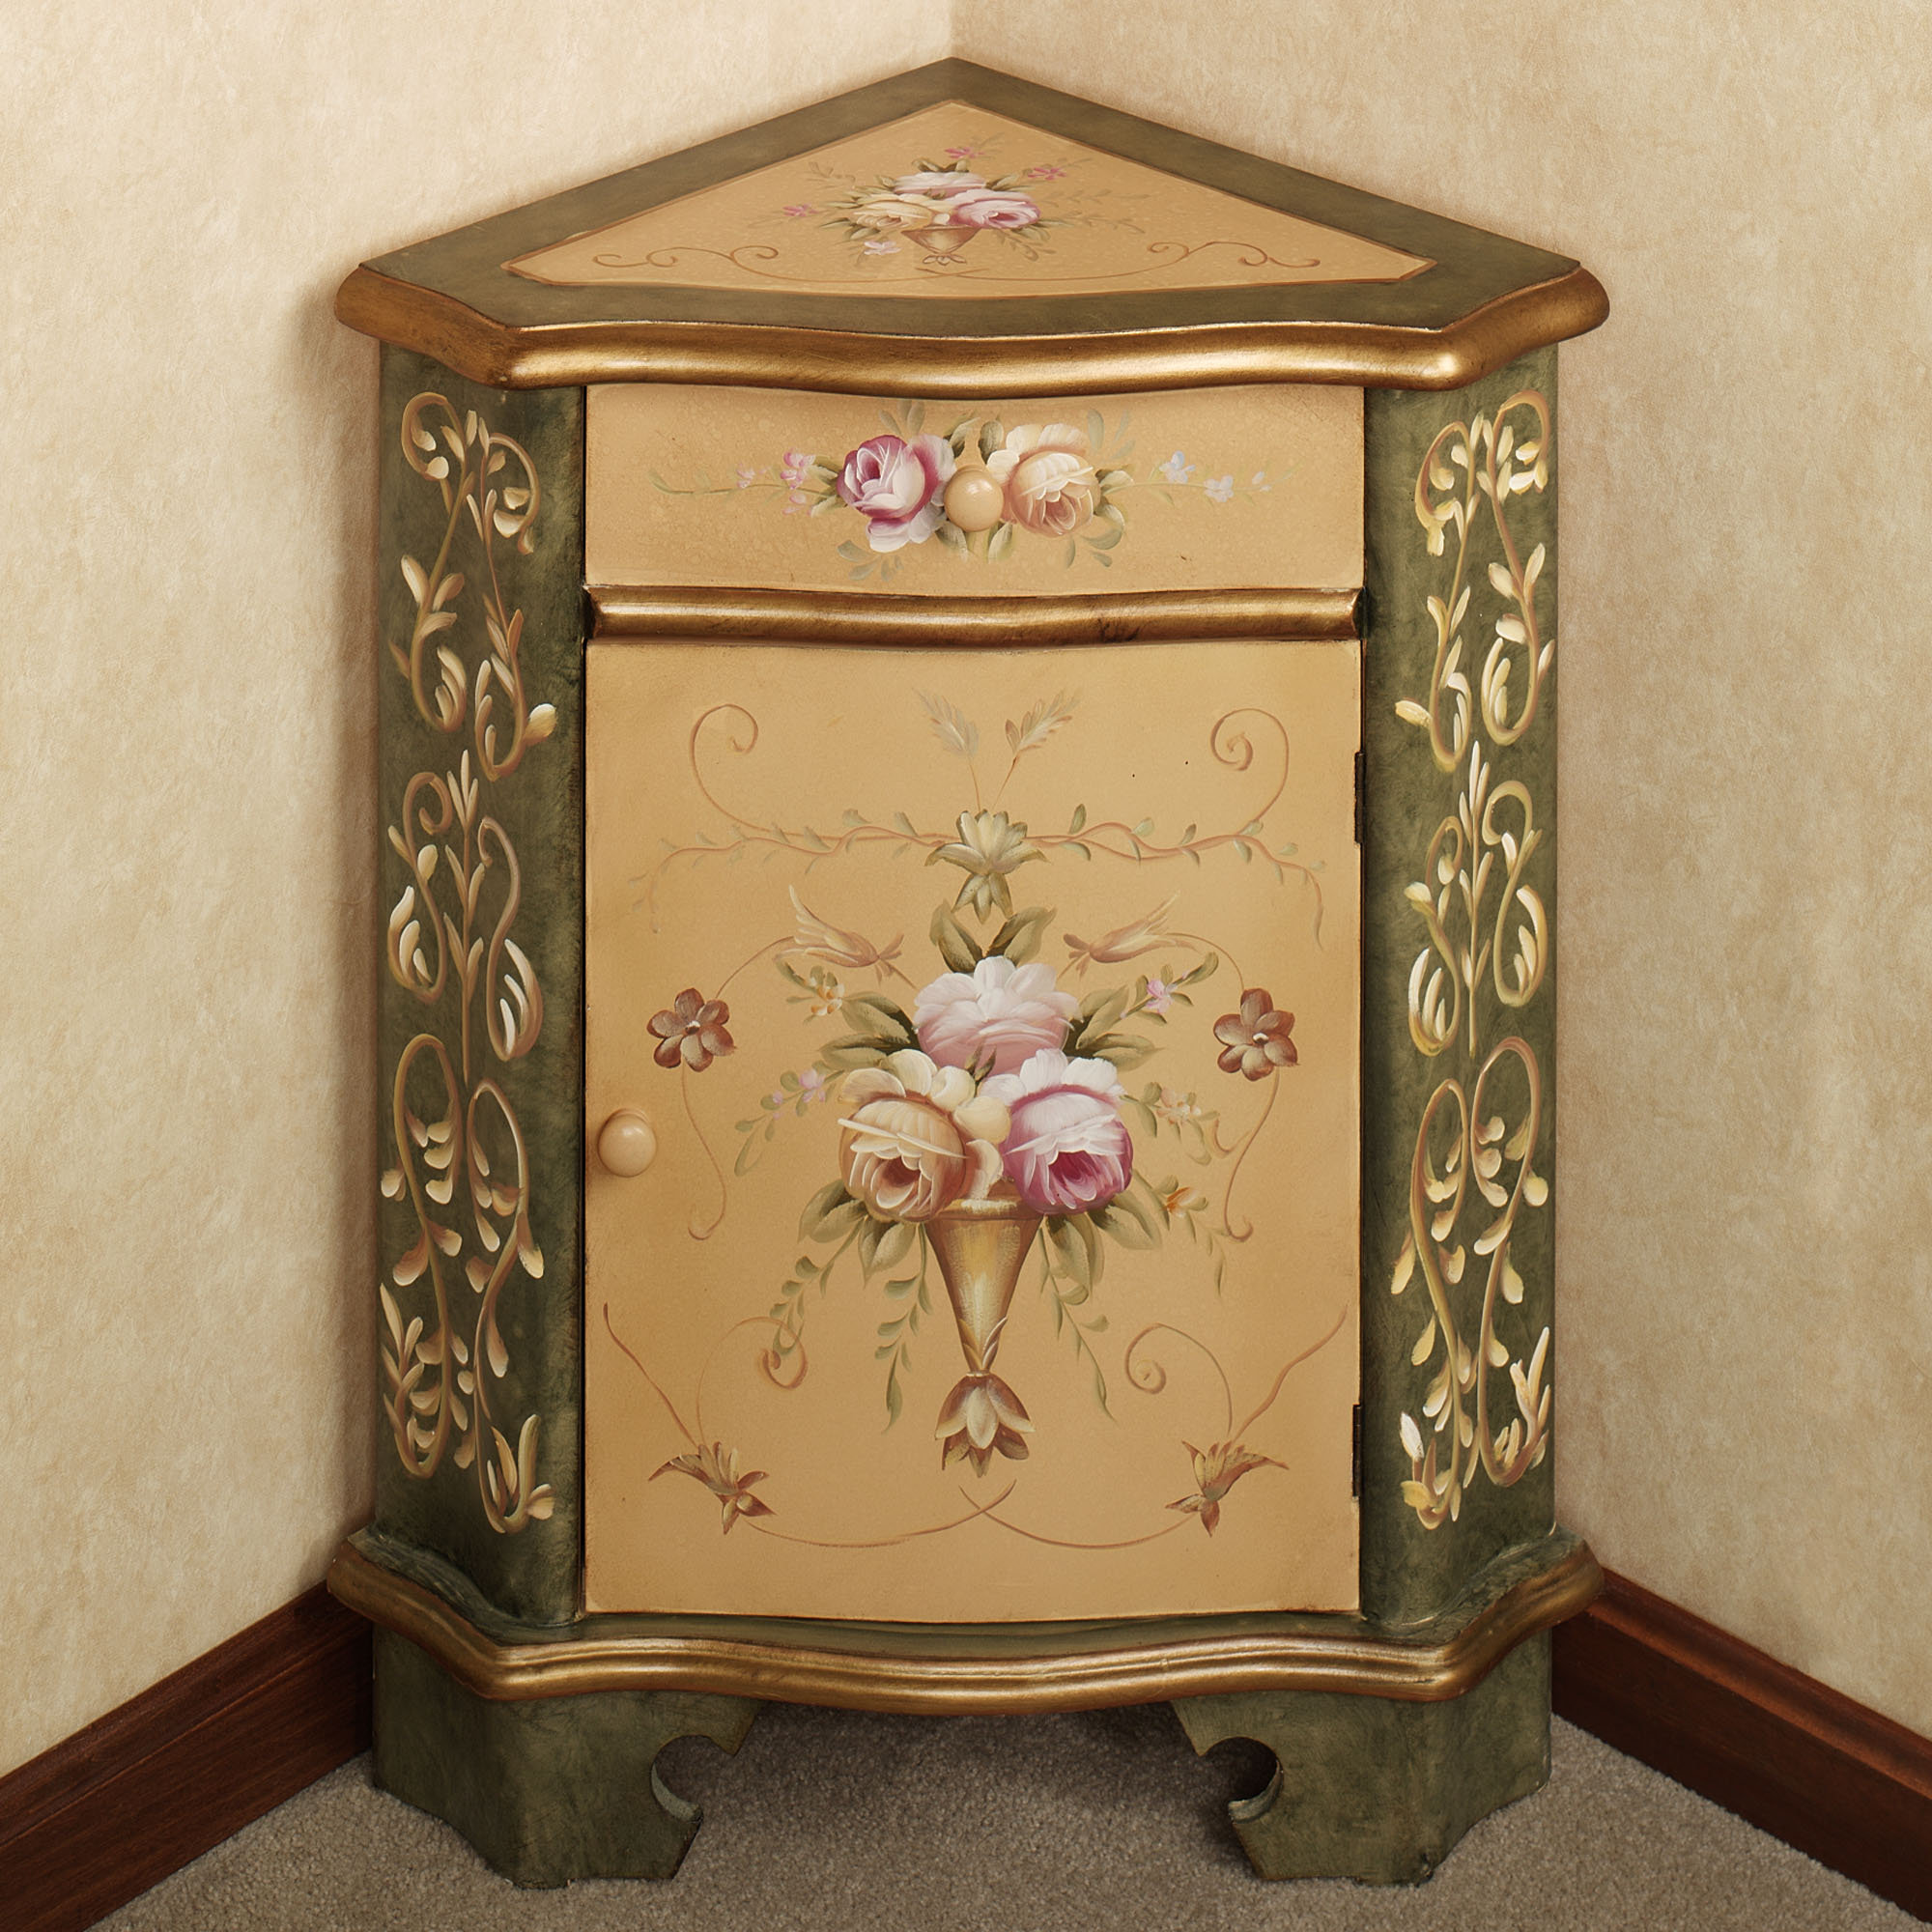 luxury corner accent table for dining room zandeah rose floral furniture cabinet design awesome using drawer and not decor ideas sheldon outdoor mirrored tray side aluminum